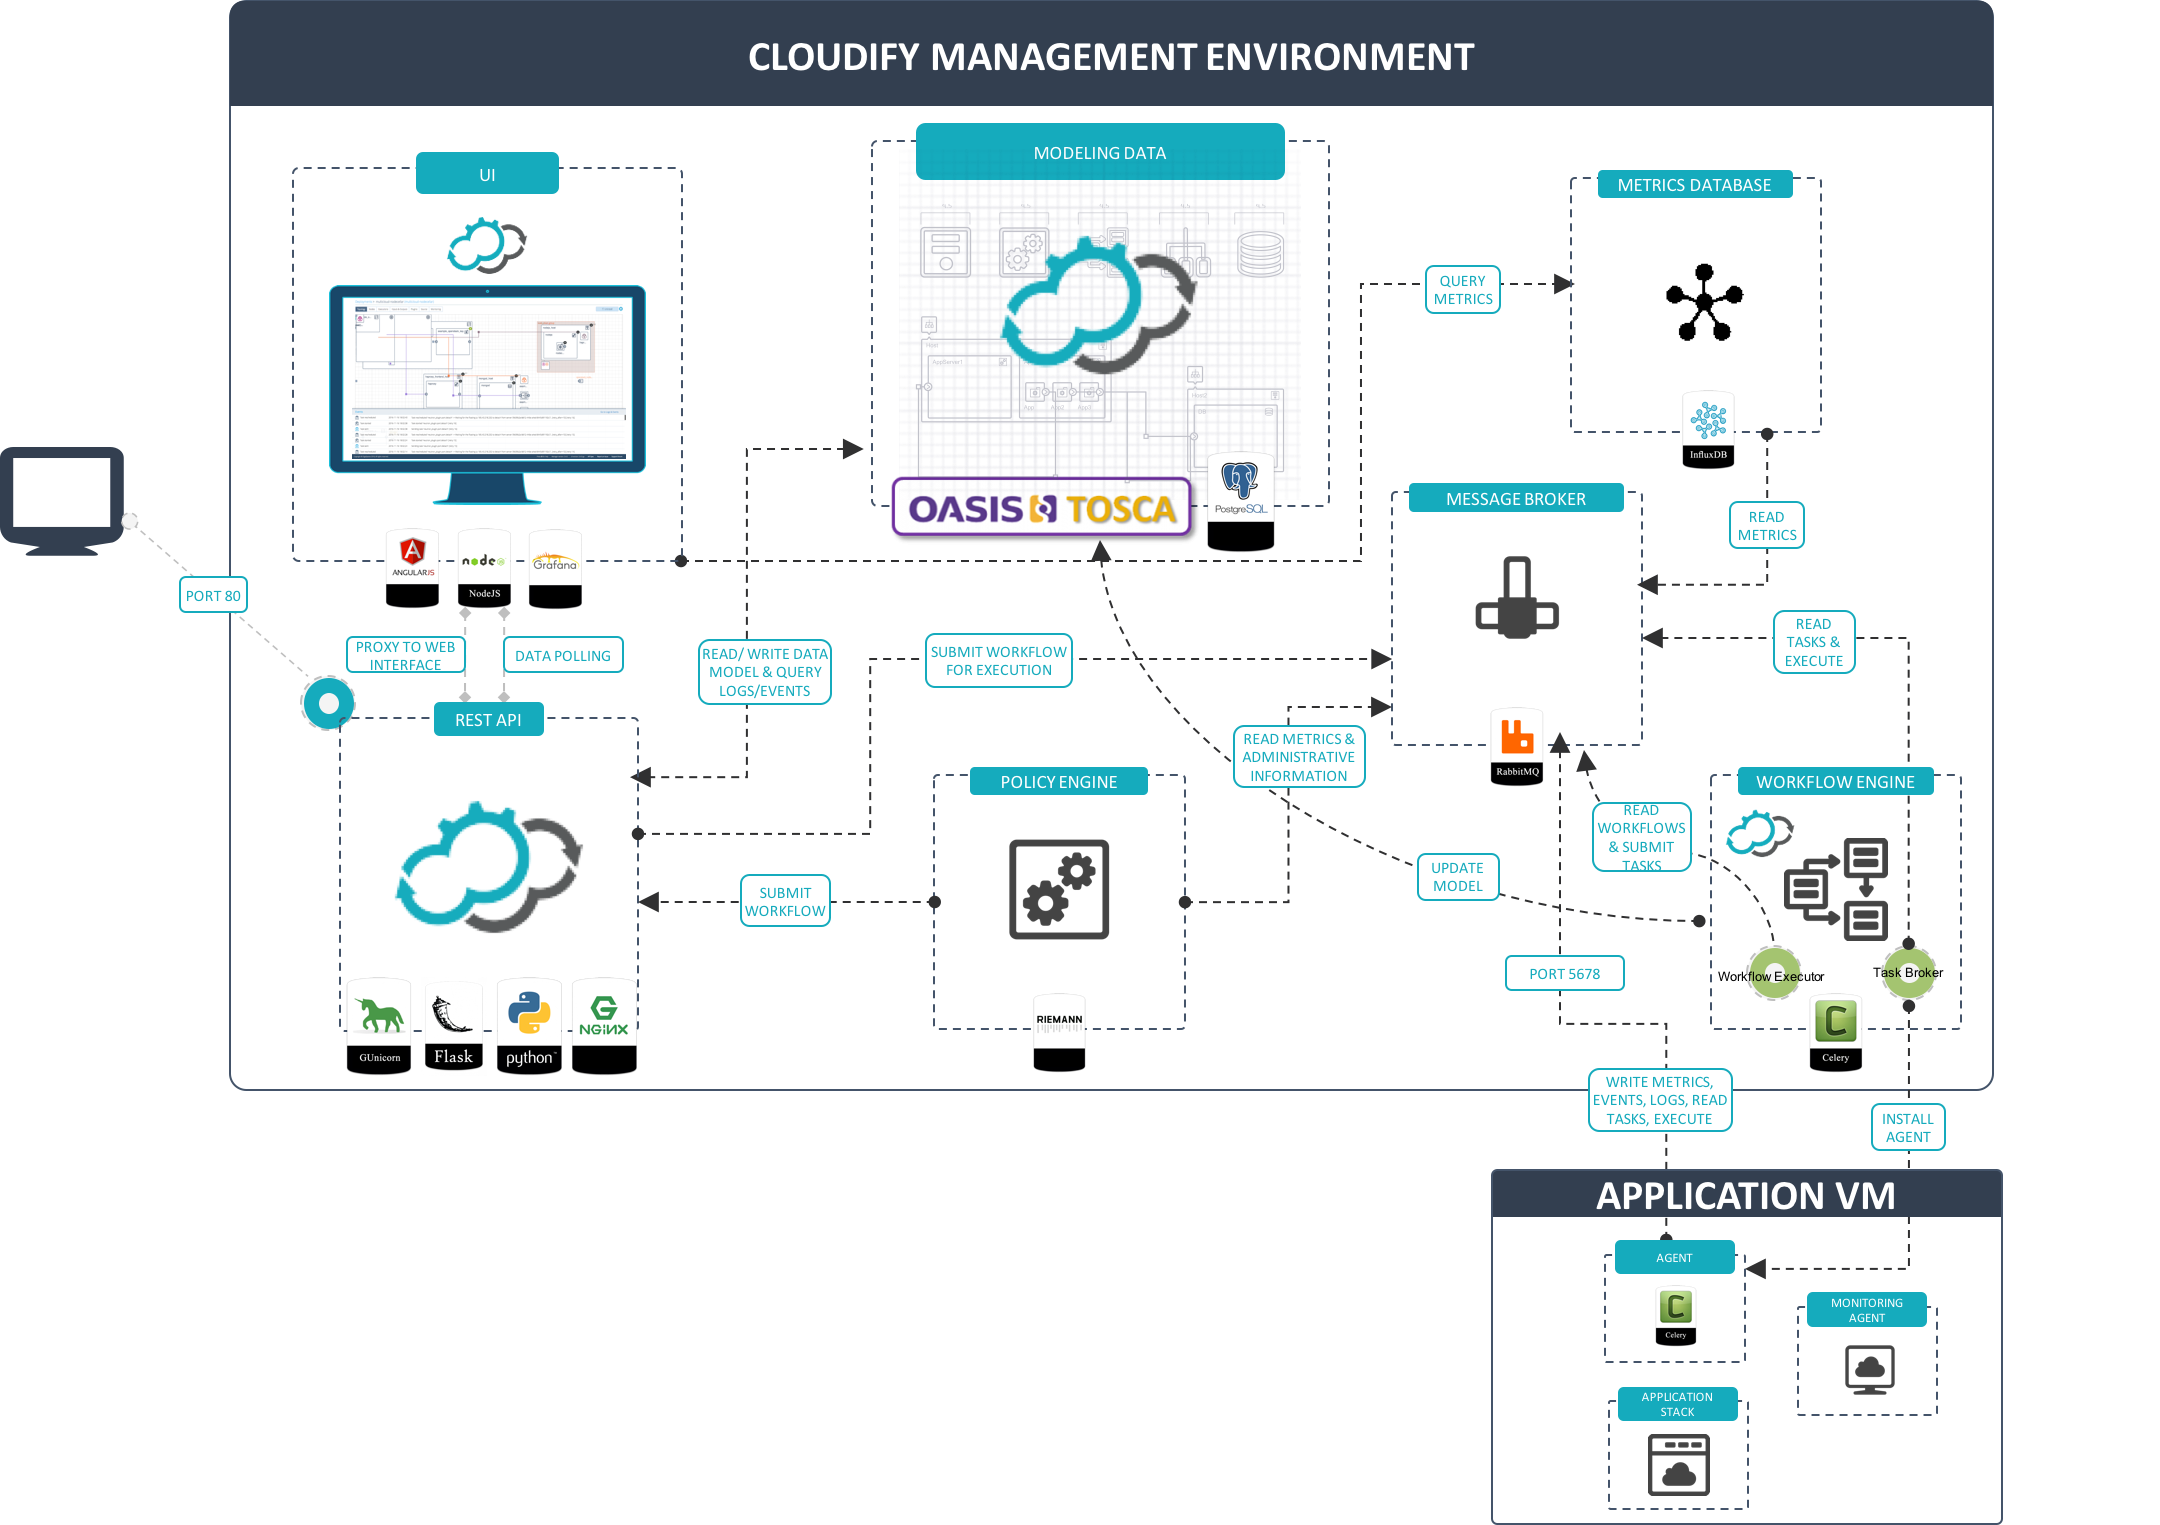 Overview of open source components in cloudify malvernweather Images